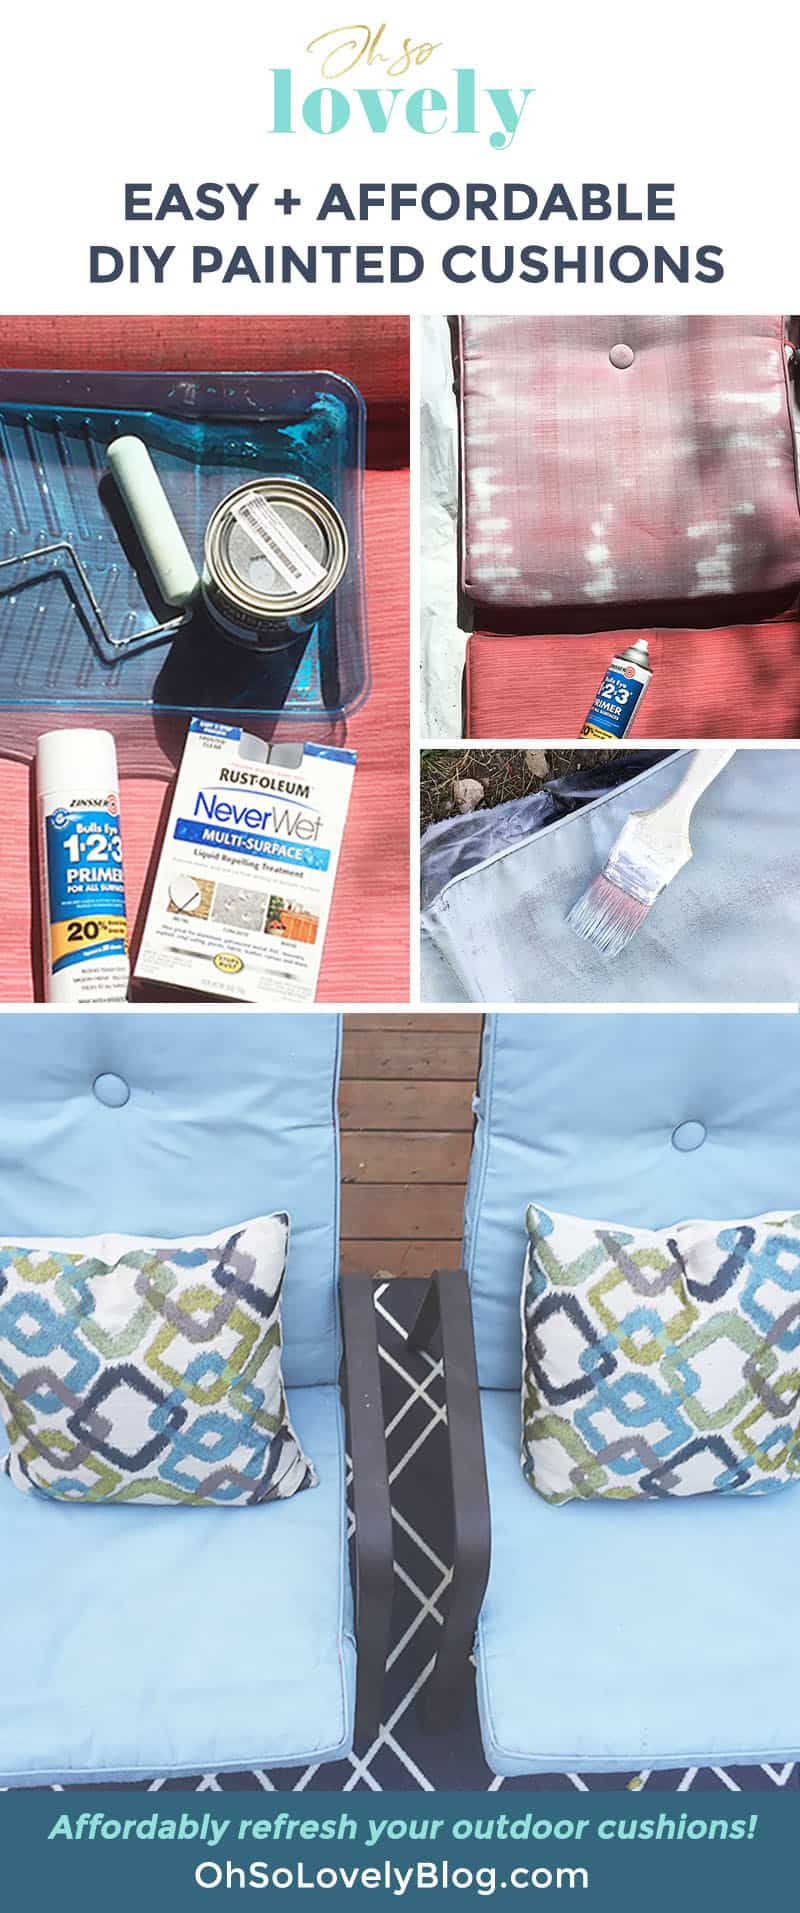 DIY painted cushion tutorial — update your outdoor chairs on a budget!